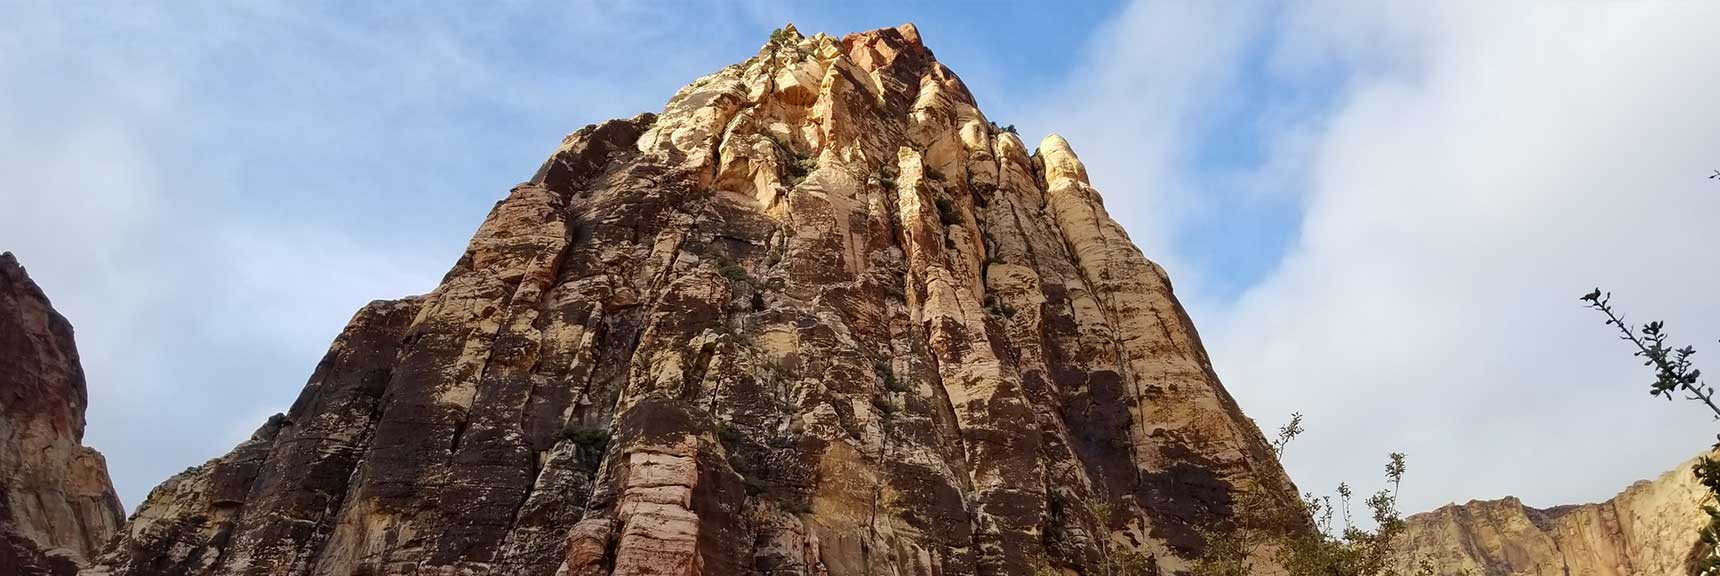 Mescalito Peak in Pine Creek Canyon, Red Rock National Park, Nevada